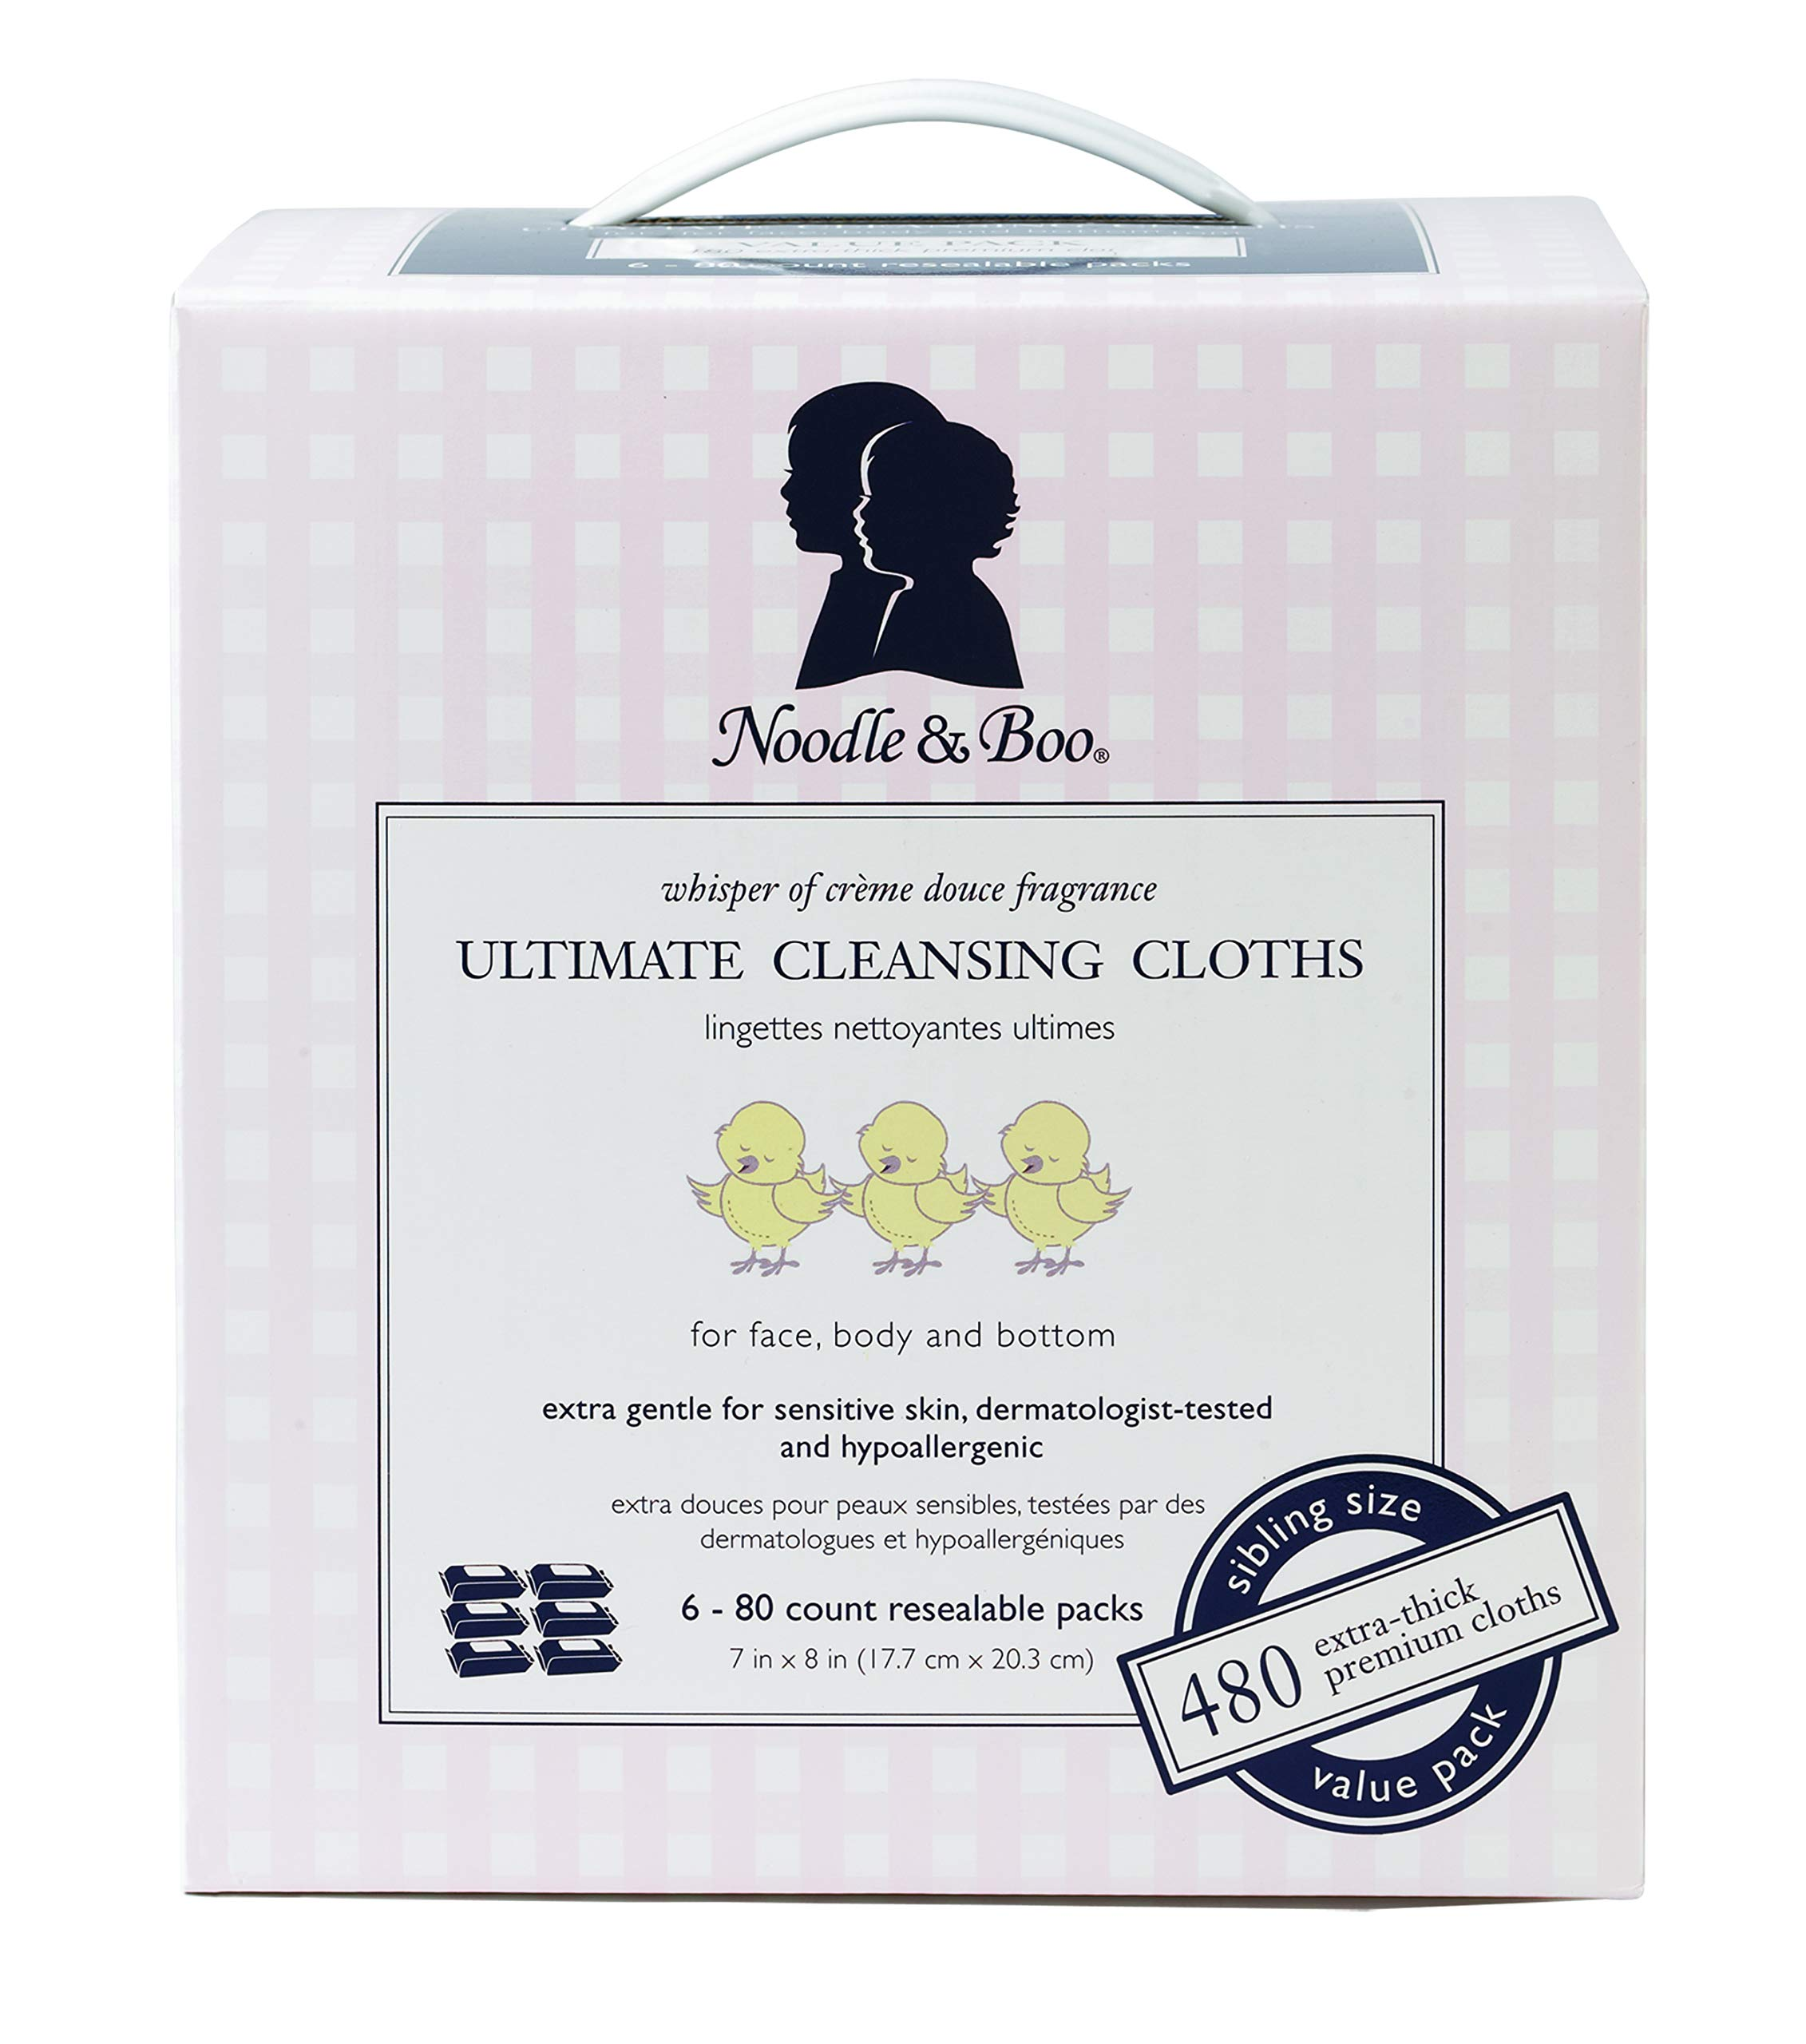 Noodle & Boo Sibling Sized Wipes Ultimate Cleansing Cloths 6 Pack, 480 Count